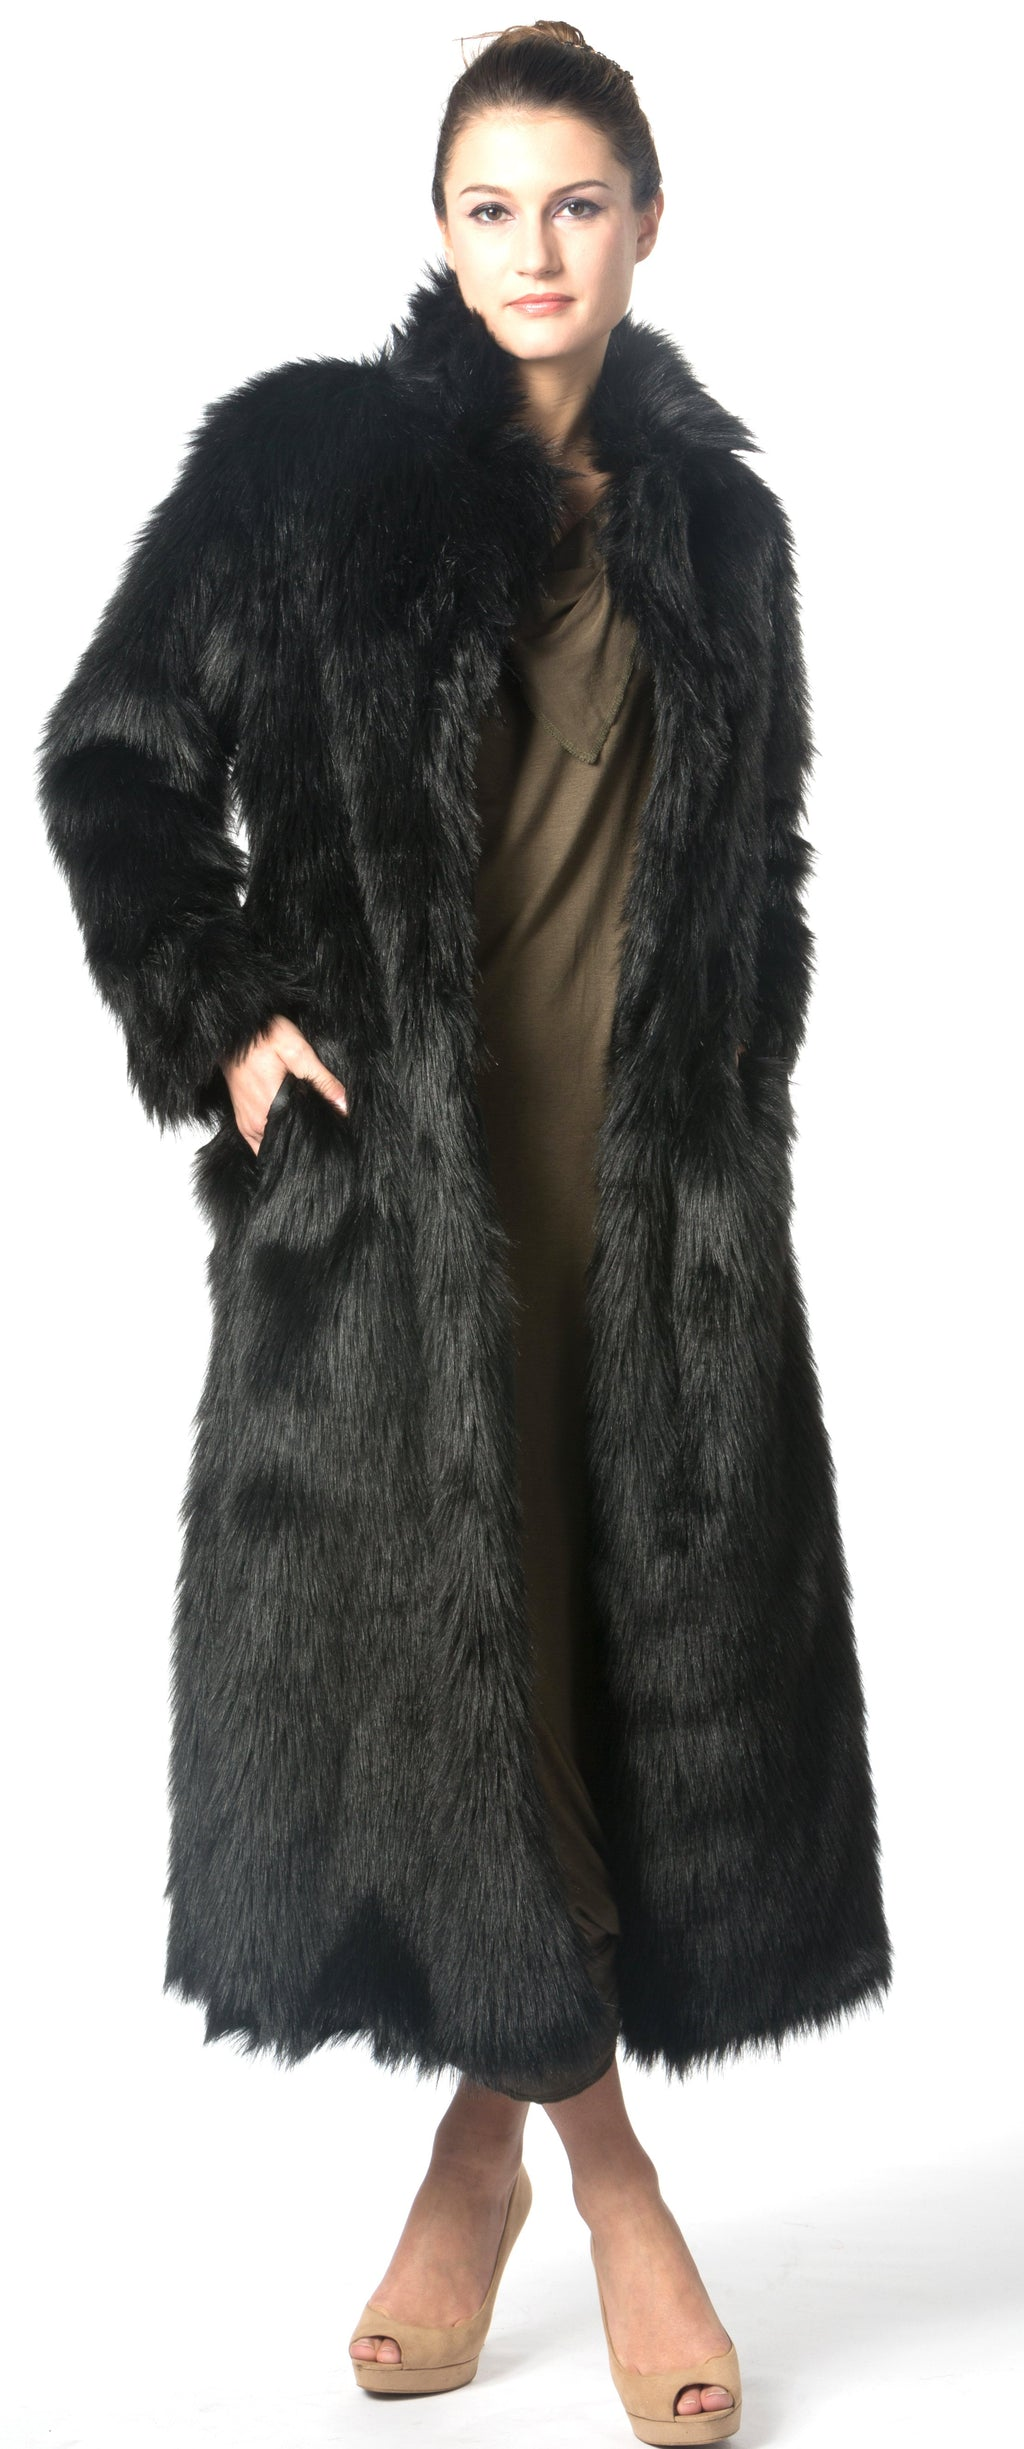 black faux fur coat , long body faux fur coat christmas coat winter warm coat snow coat ski coat fur coat fashion show coat designer's coat unique black coat christmas gifts idea best birthday gift